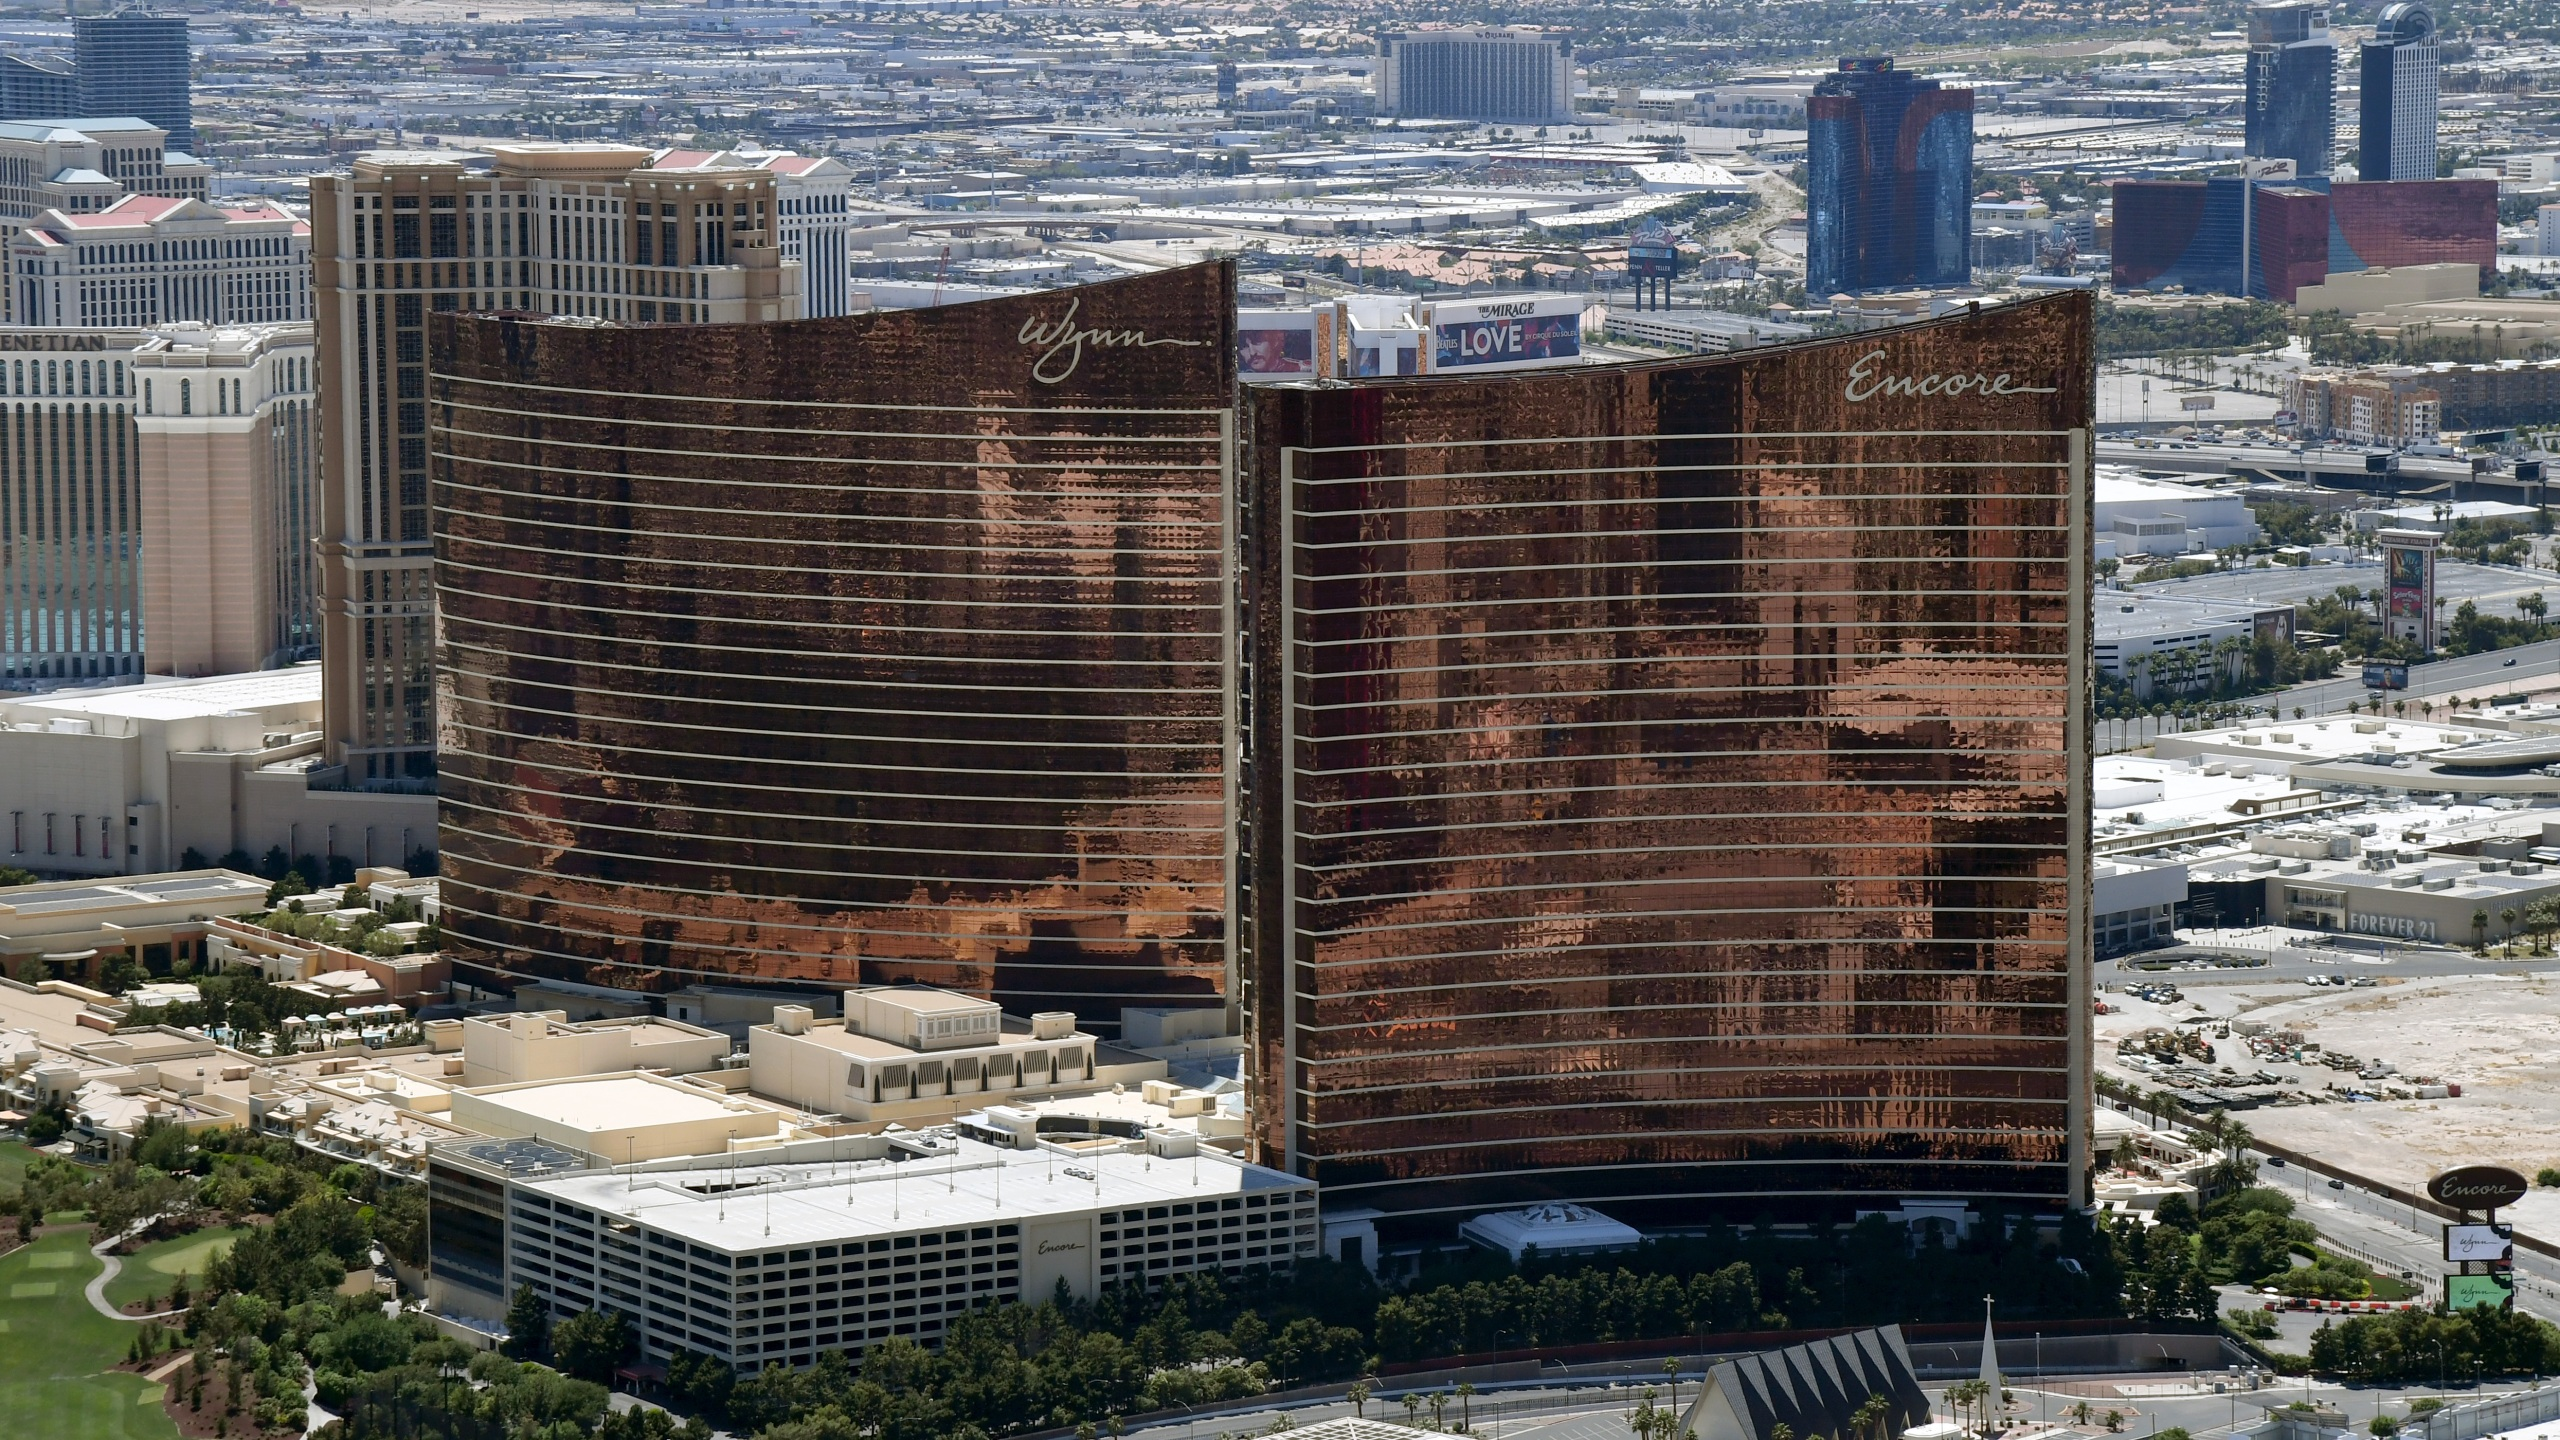 An aerial view shows Wynn Las Vegas (L) and Encore Las Vegas, both of which have been closed since March 17 in response to the coronavirus pandemic on May 21, 2020 in Las Vegas, Nevada. (Ethan Miller/Getty Images)